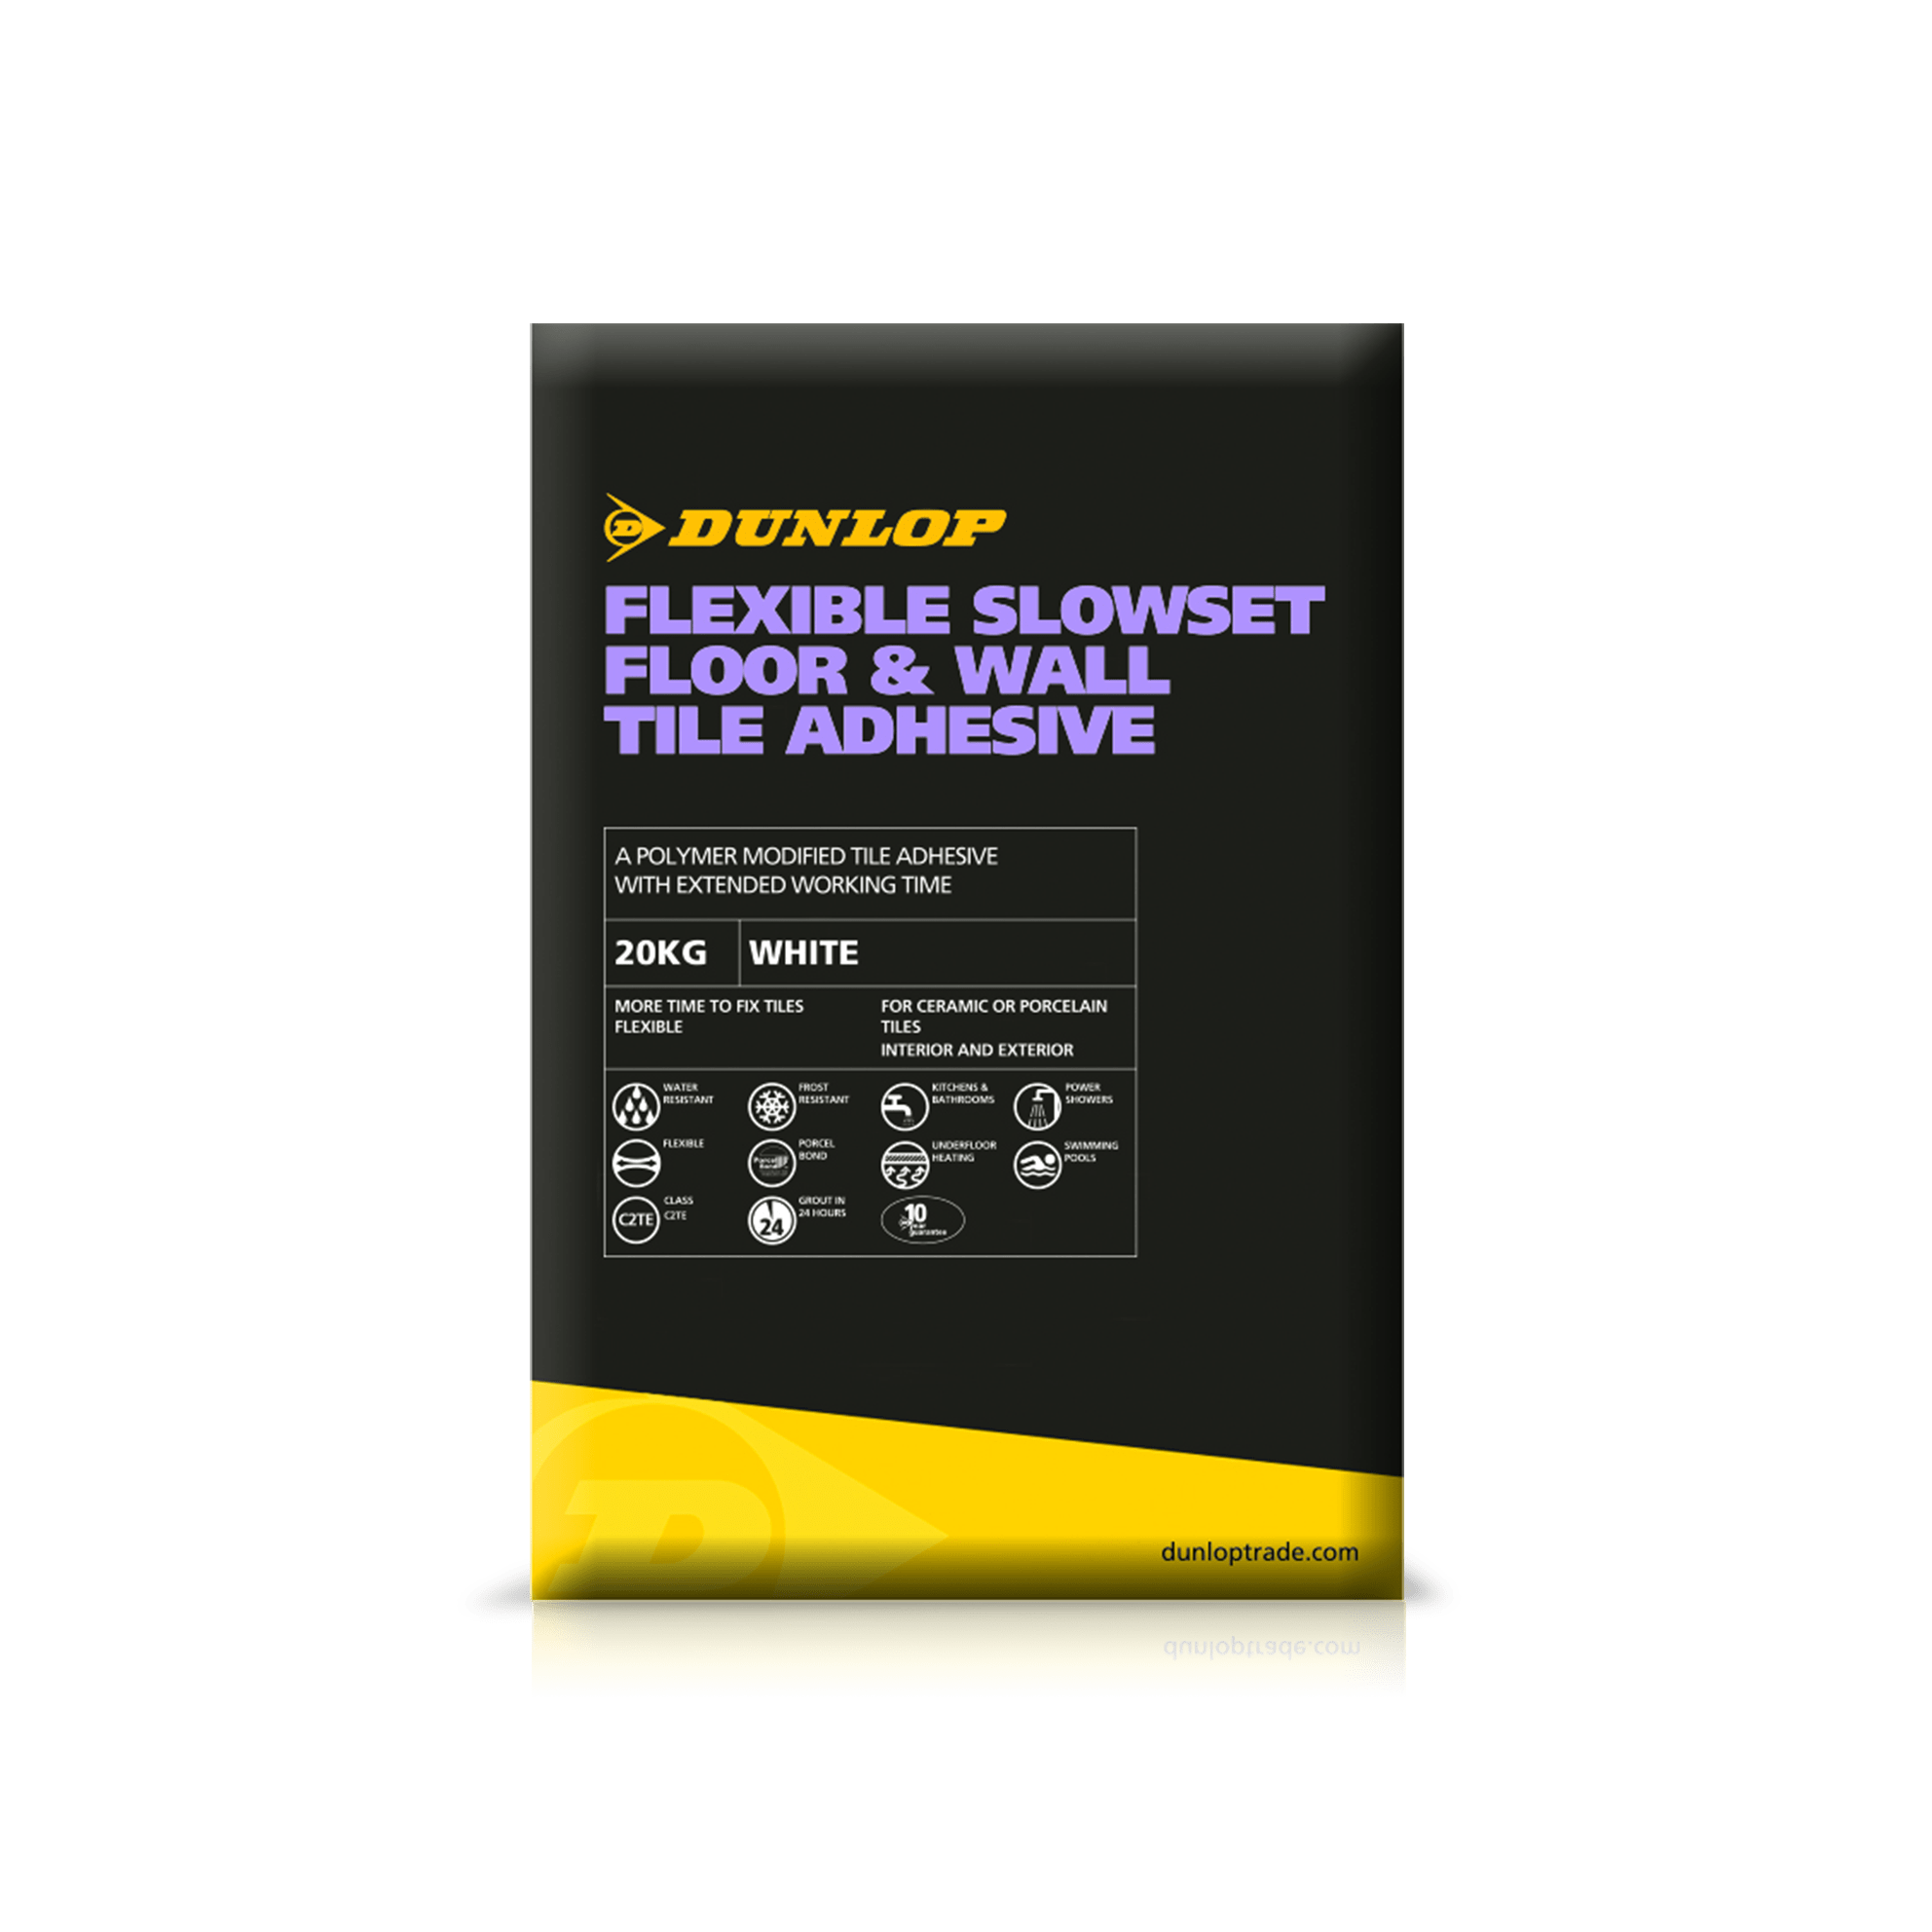 Tile adhesive tile sealant tile grout dunlop trade flexible slowset floor wall tile adhesive dailygadgetfo Choice Image